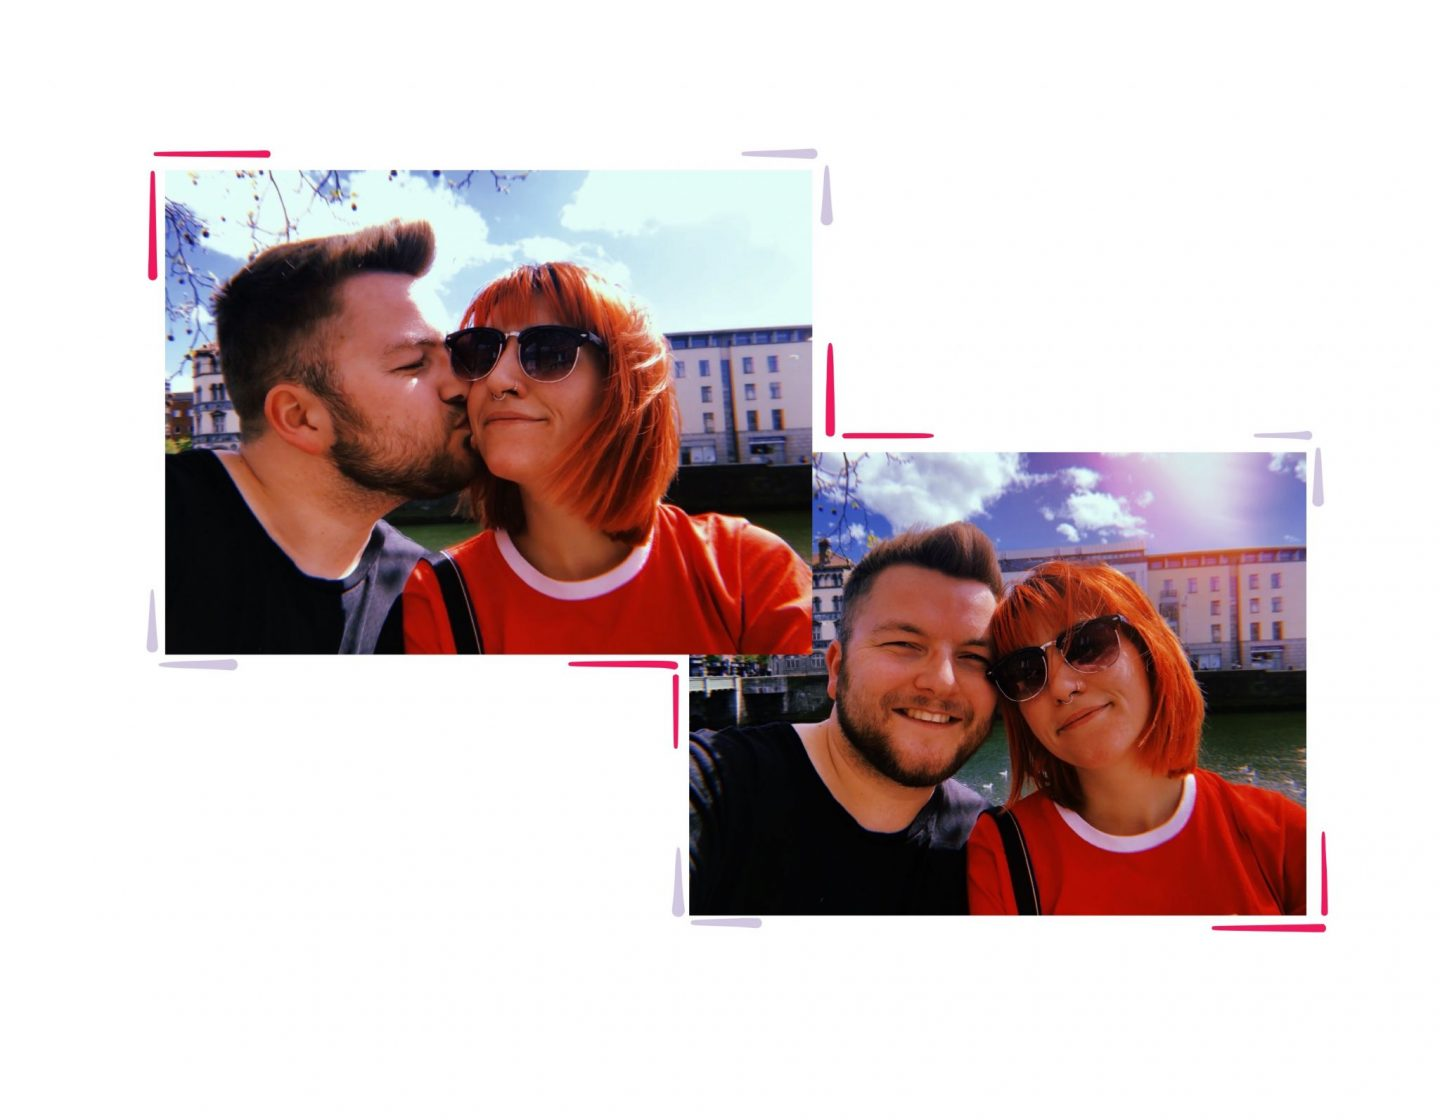 Dublin diaries; Exploring & Guinness tour - me and Jacob collage